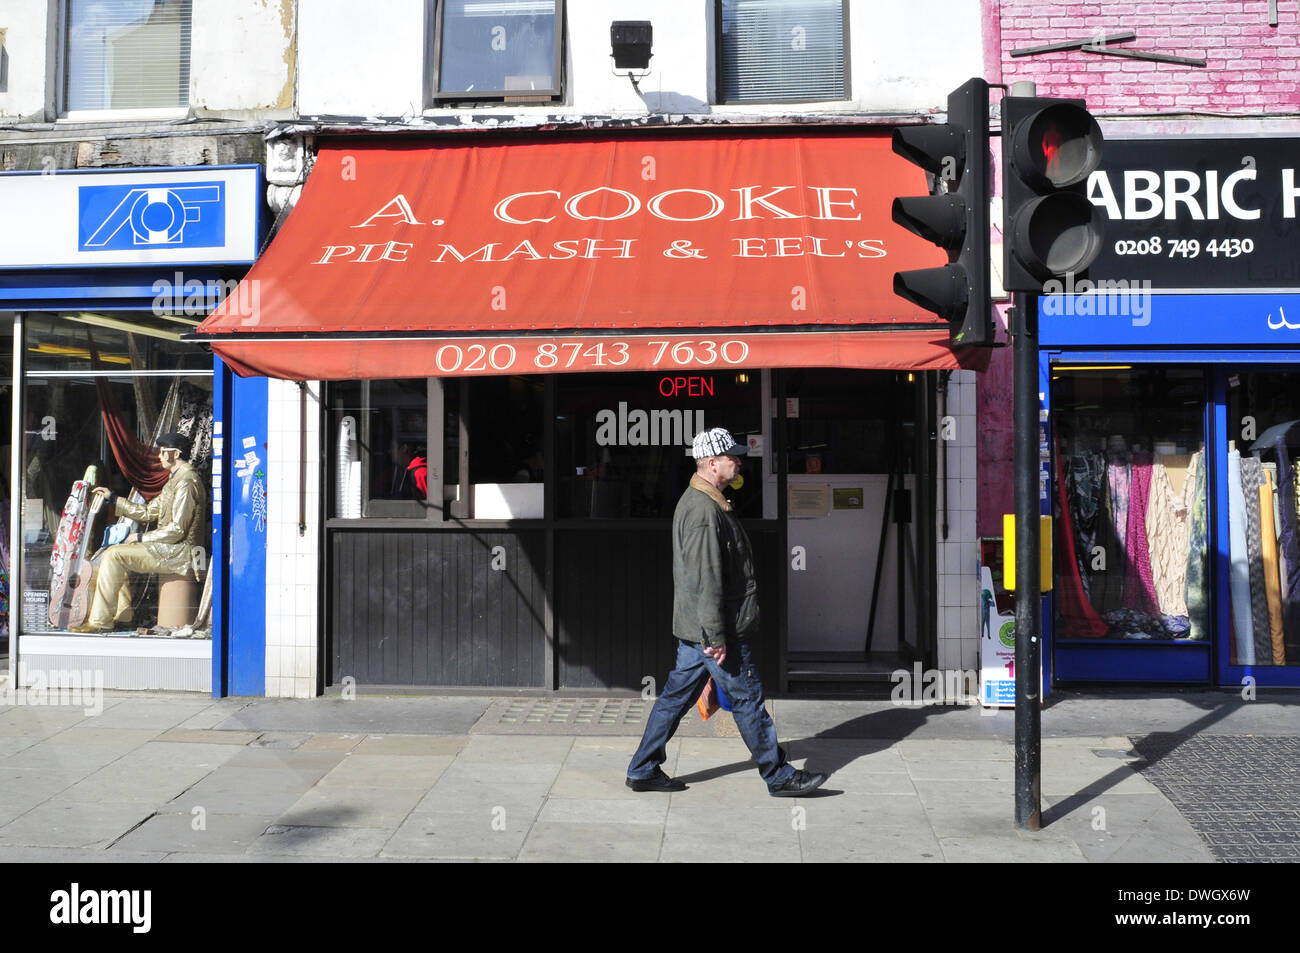 A man walks past Cooke pie and mash shop in Shepherd's, London - Stock Image